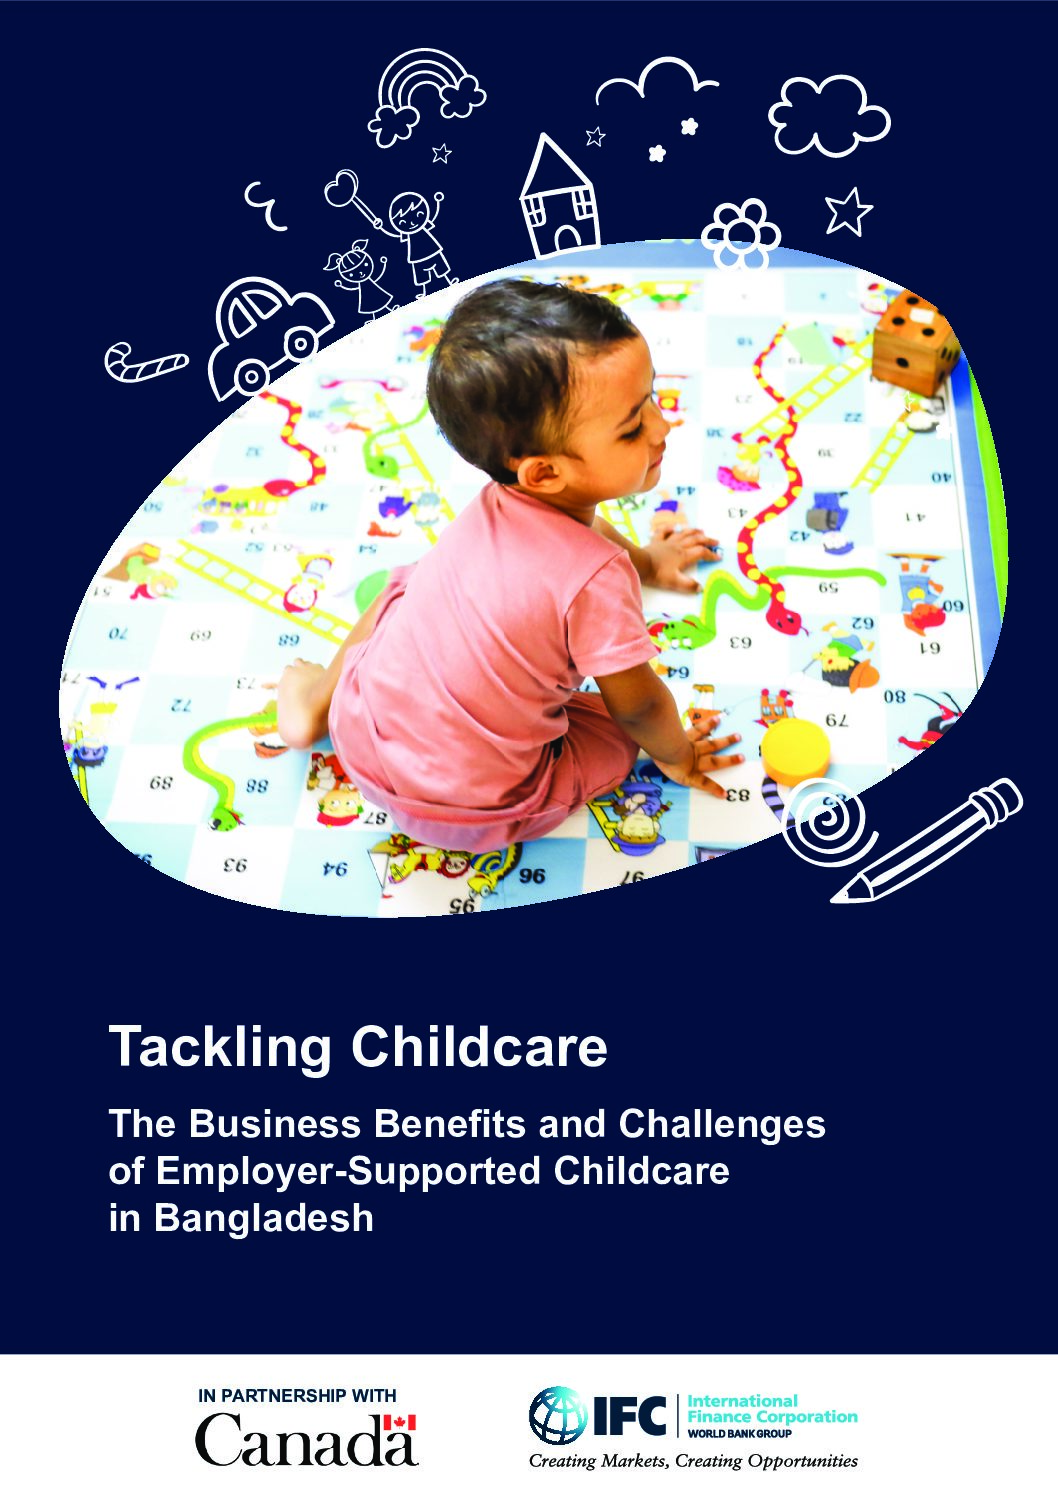 Tackling Childcare: The Business Benefits and Challenges of Employer-supported Childcare in Bangladesh